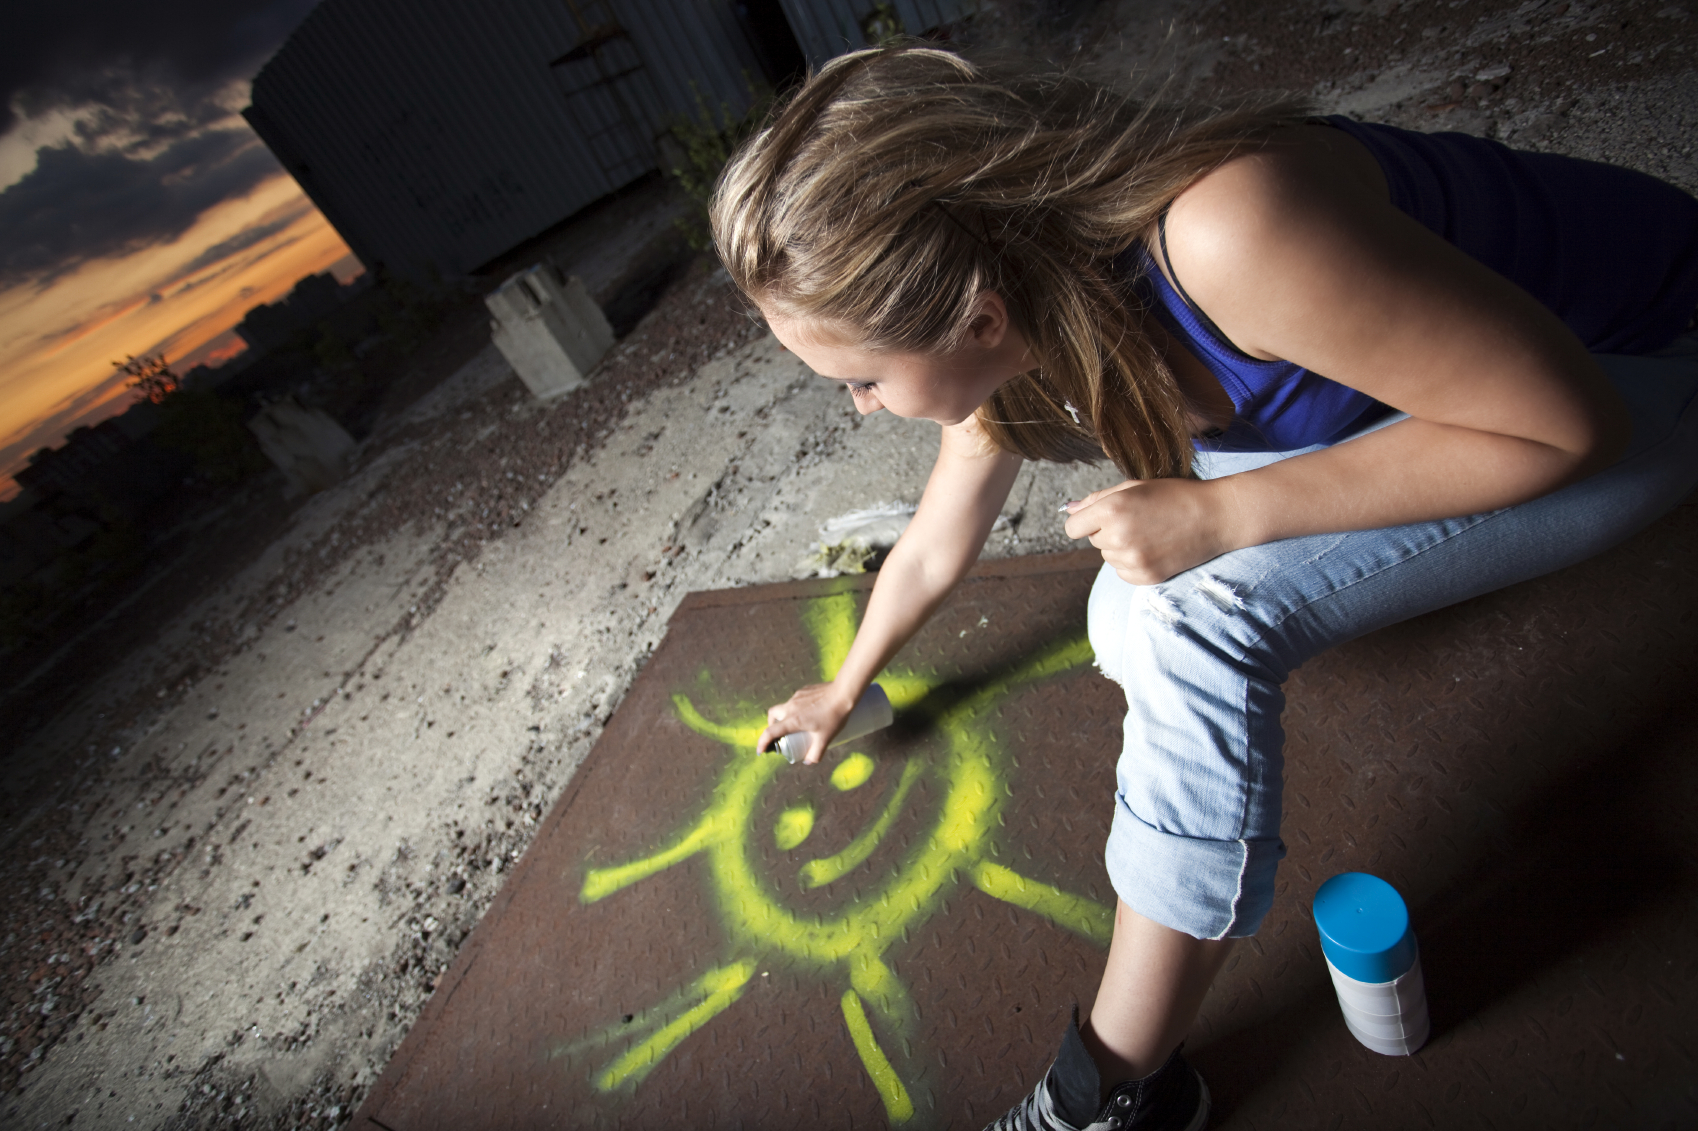 Woman spray painting an image of a happy sun